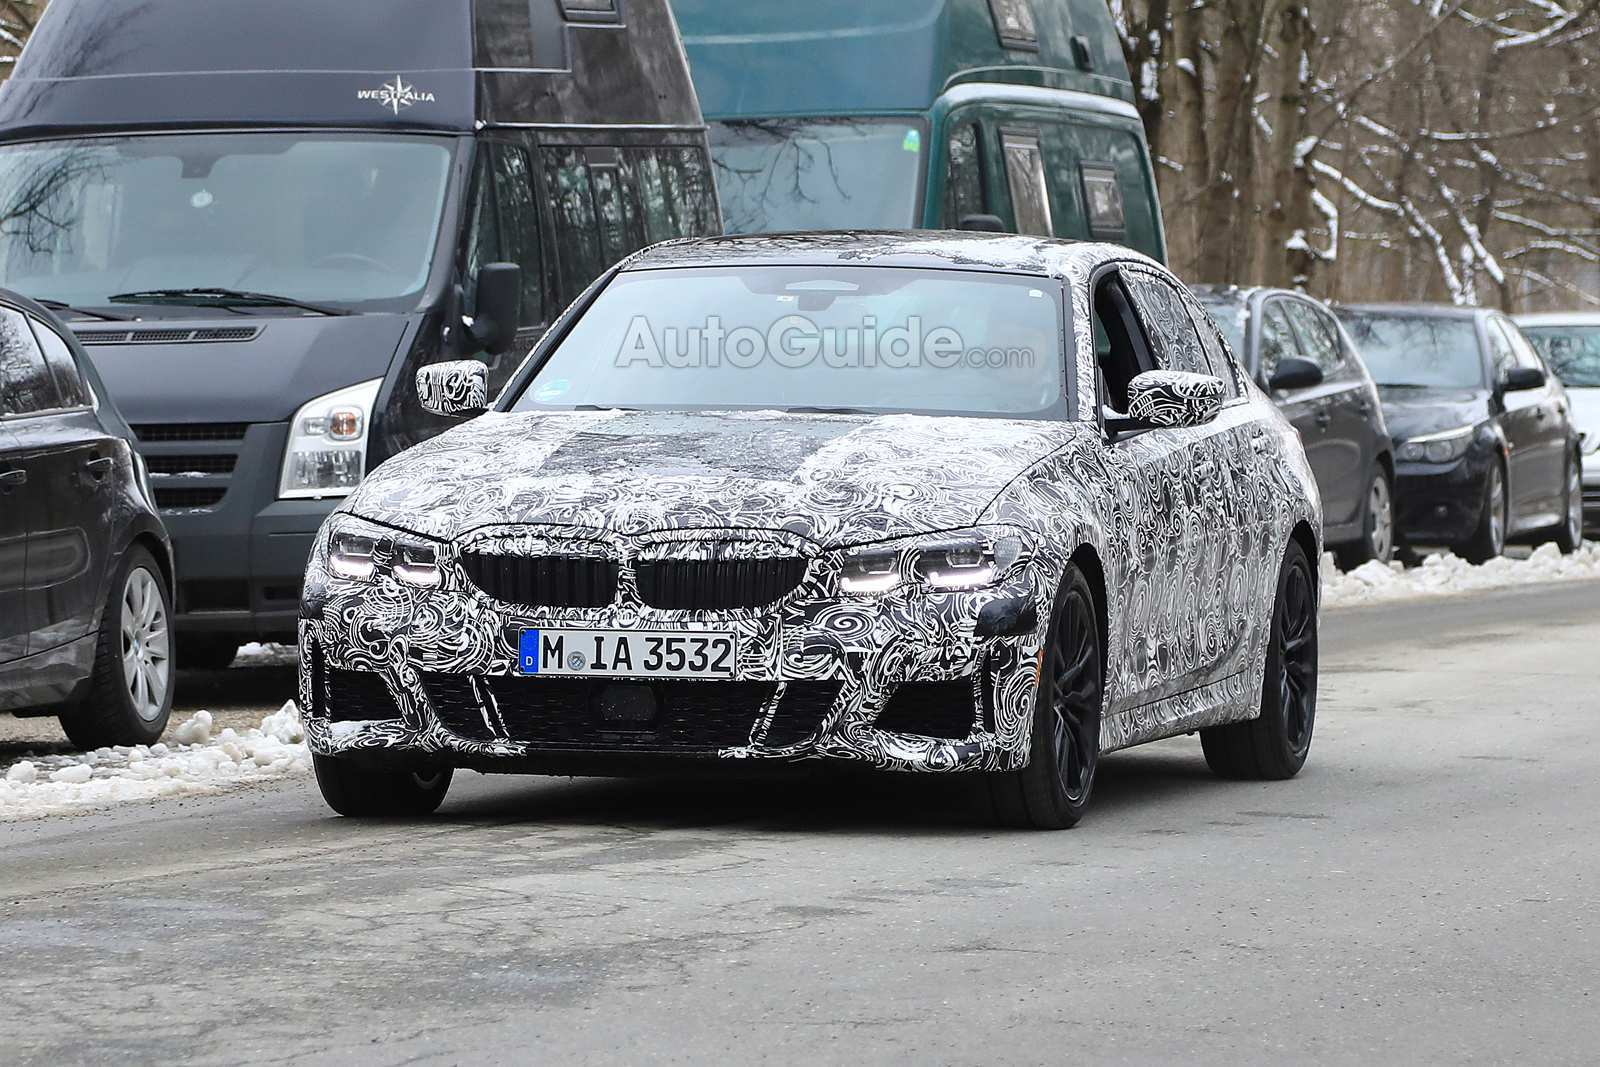 11 New 2019 Spy Shots BMW 3 Series Prices